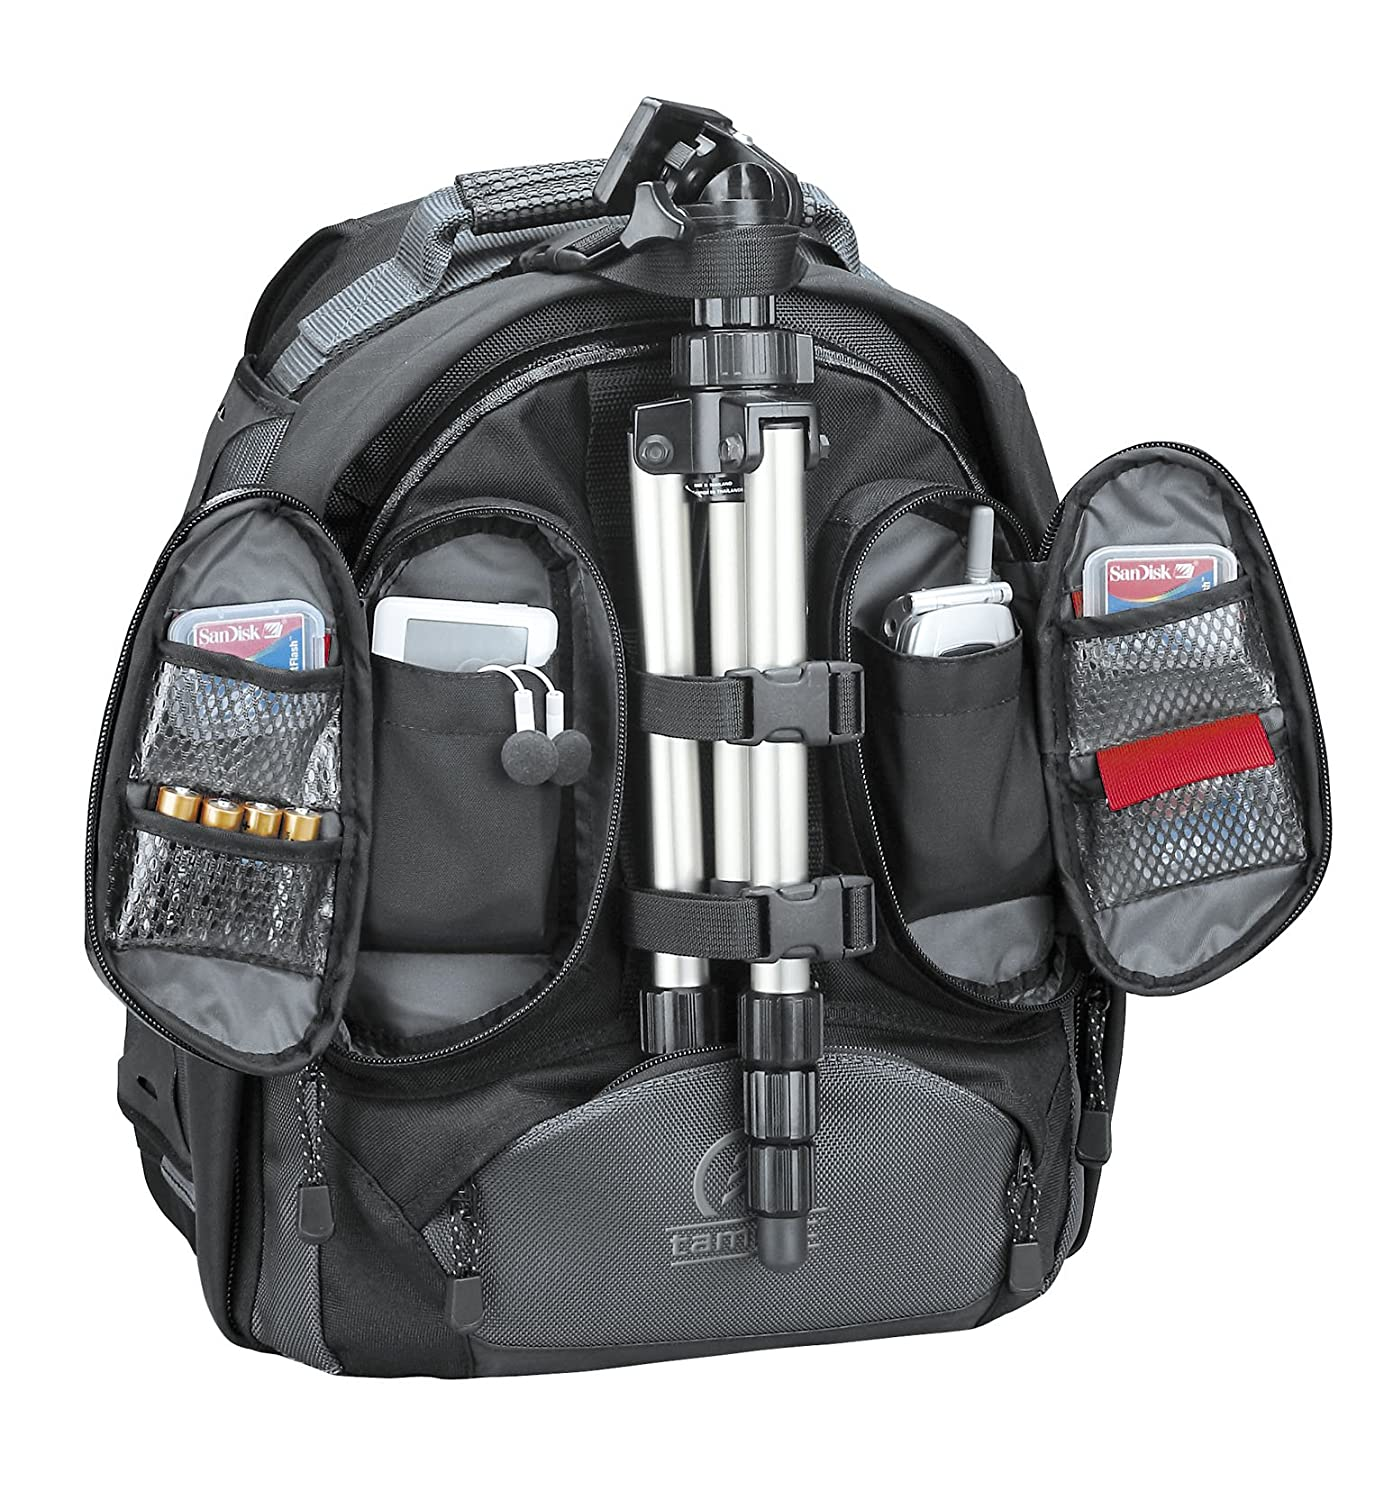 Amazon.com : Tamrac 5585 Expedition 5x Photo/Laptop Backpack ...